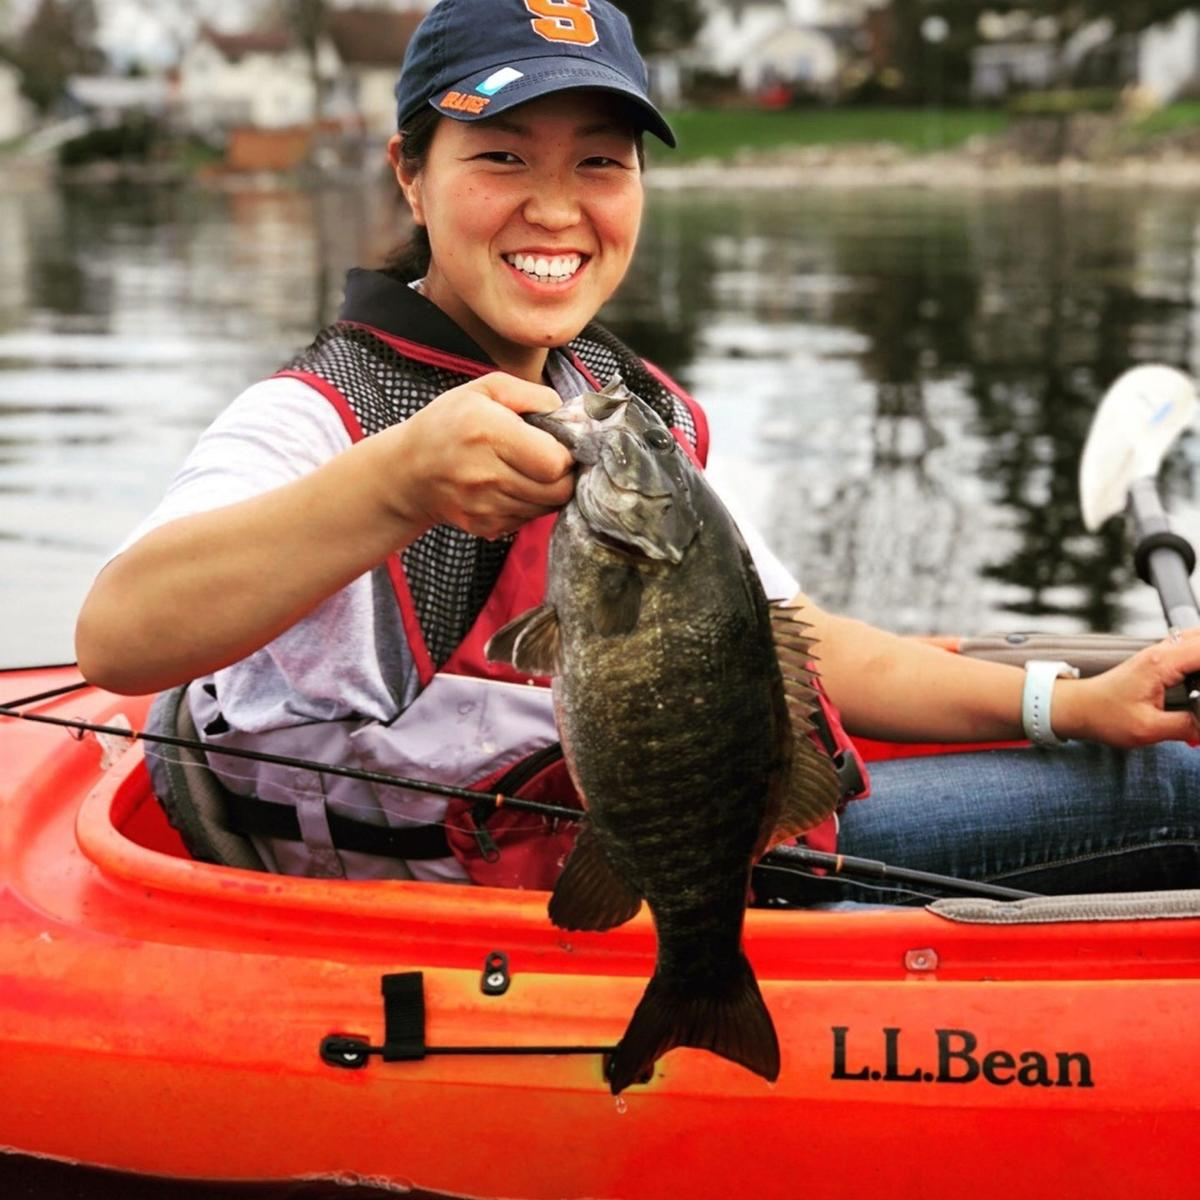 Local women angler photos take top prize in DEC contest